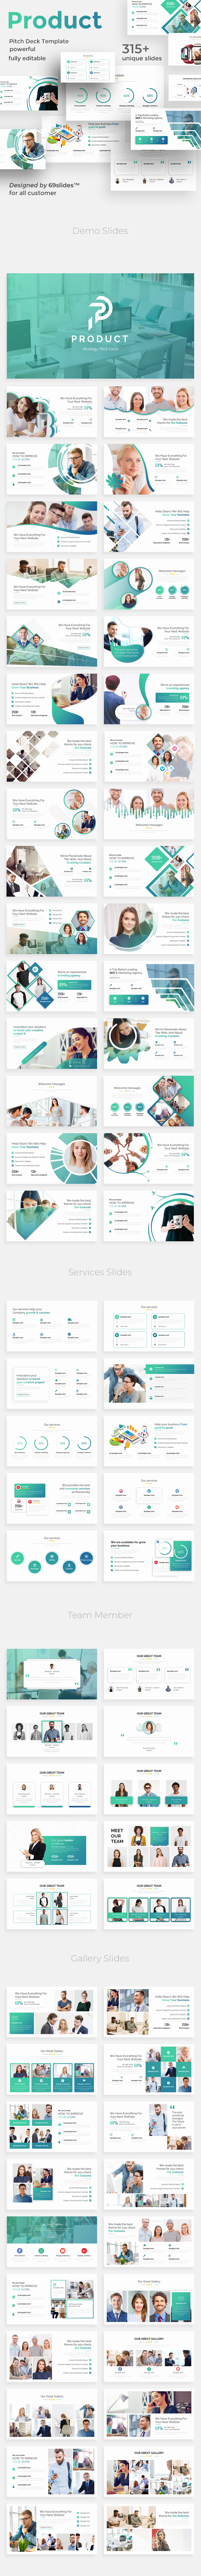 Product Strategy Pitch Deck Powerpoint Template